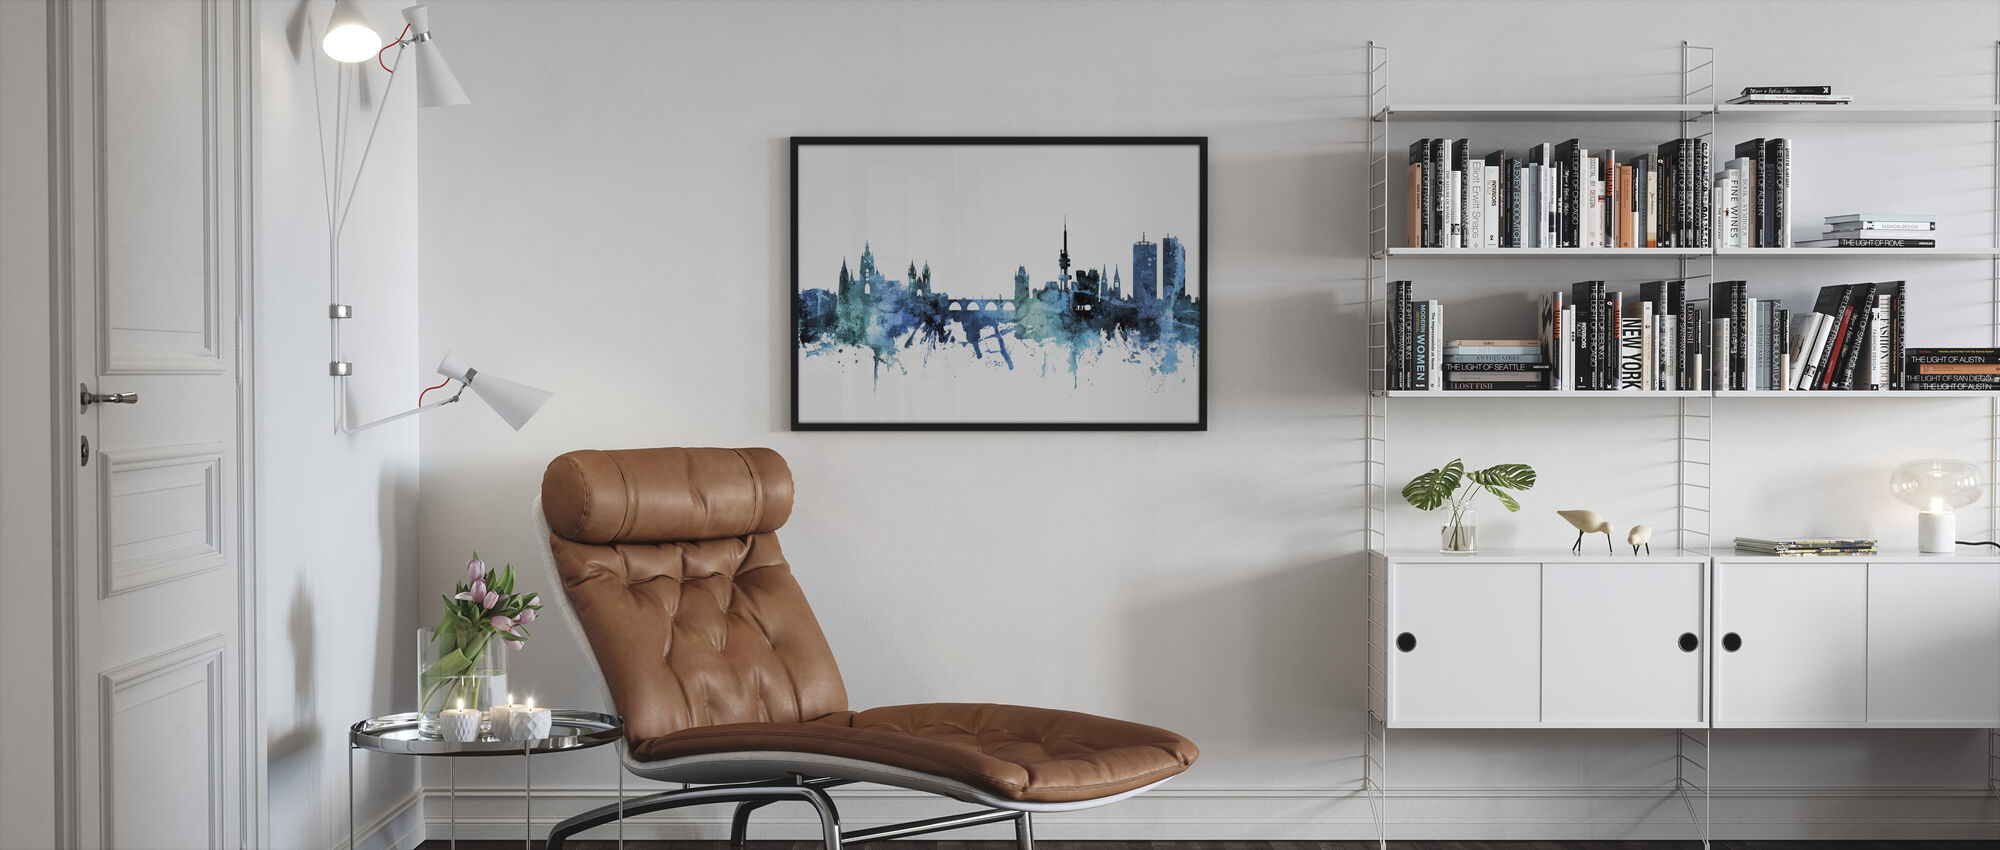 Prague (Praha) Czech Republic Skyline - Framed print - Living Room